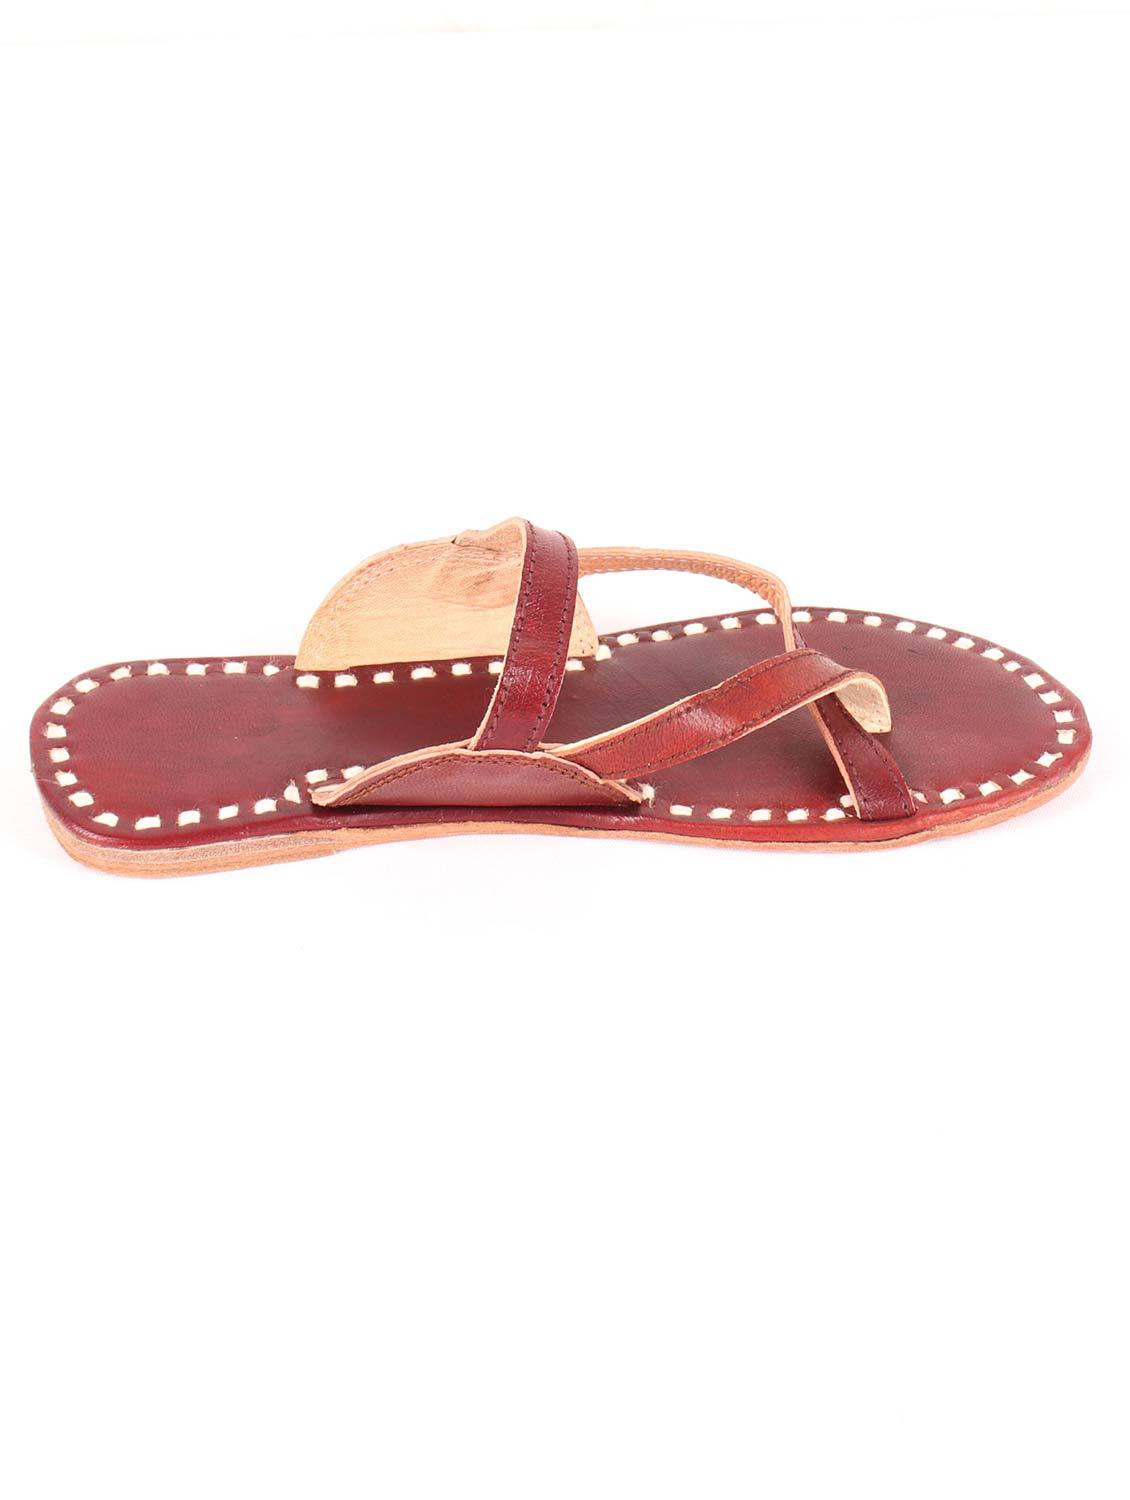 SANGARIA STRAPPED FLATS